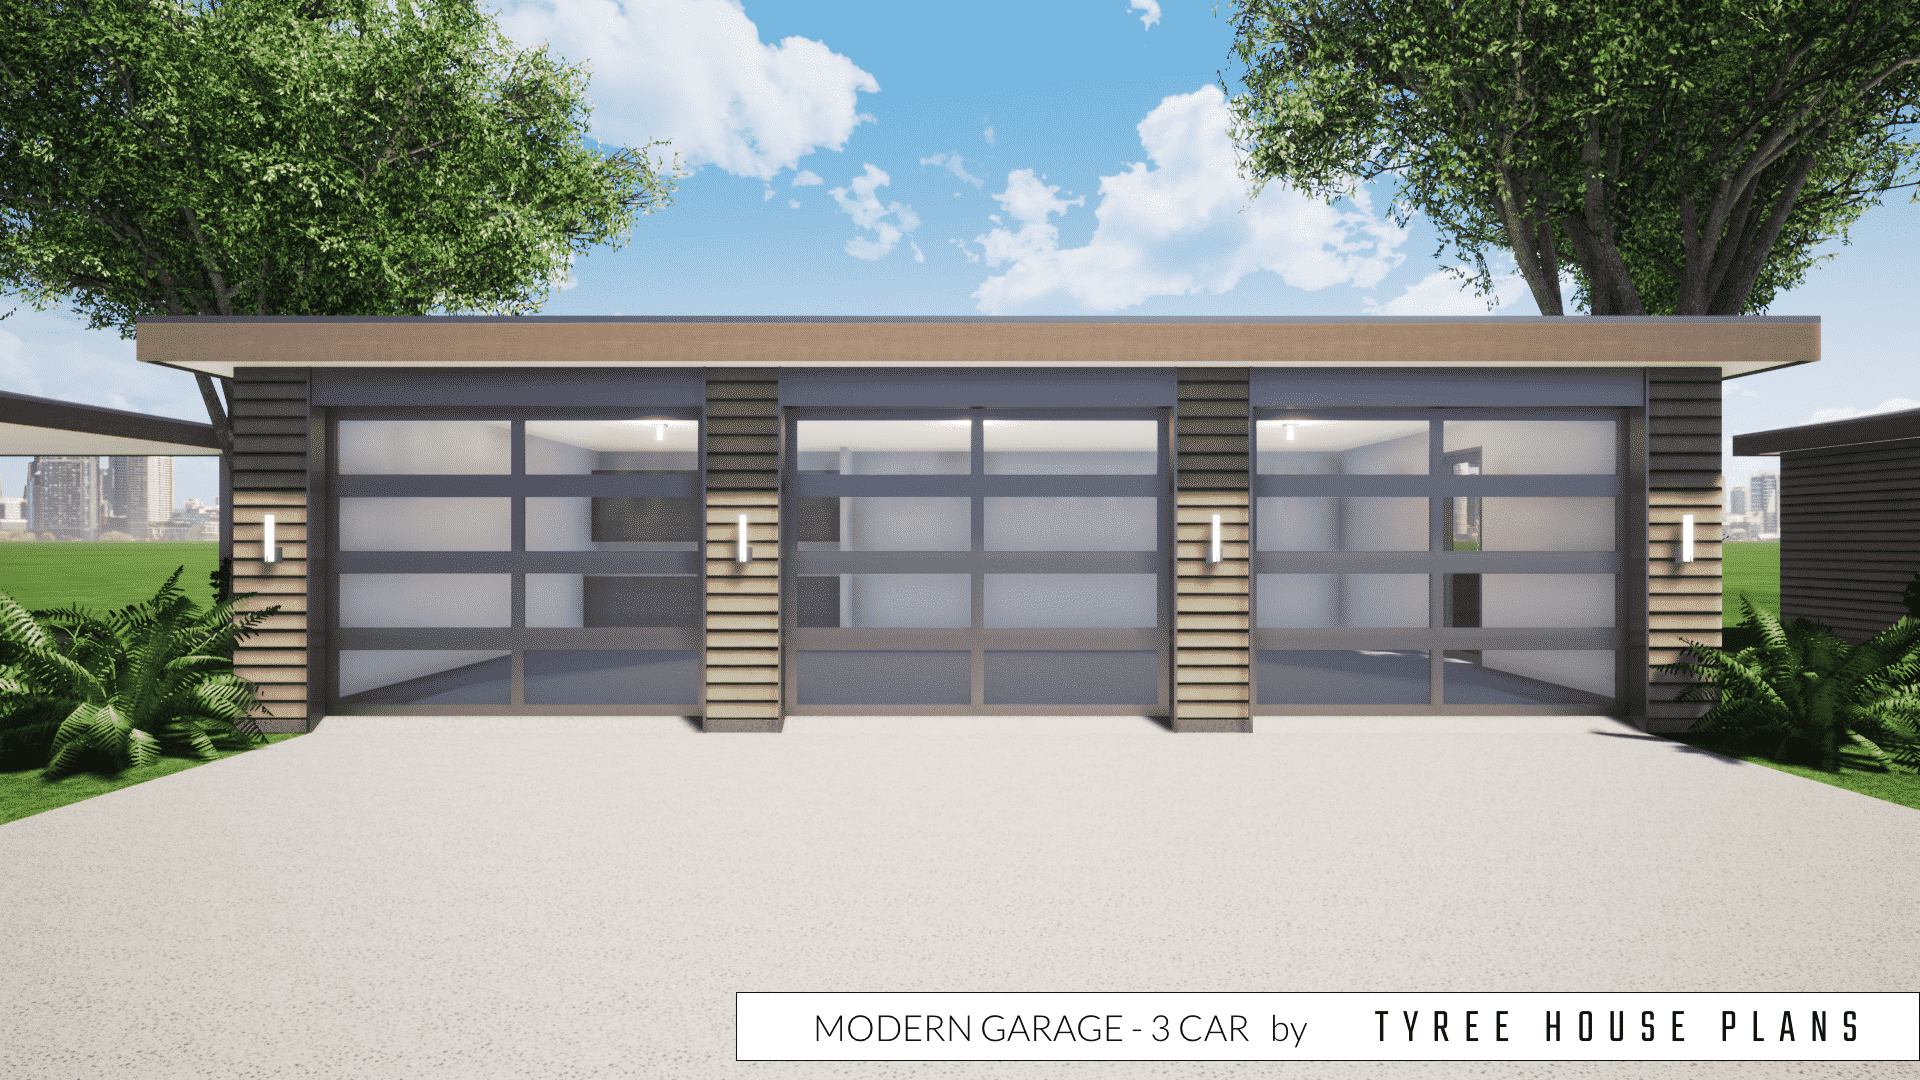 Modern Garage Plan 3 Car By Tyree House Plans